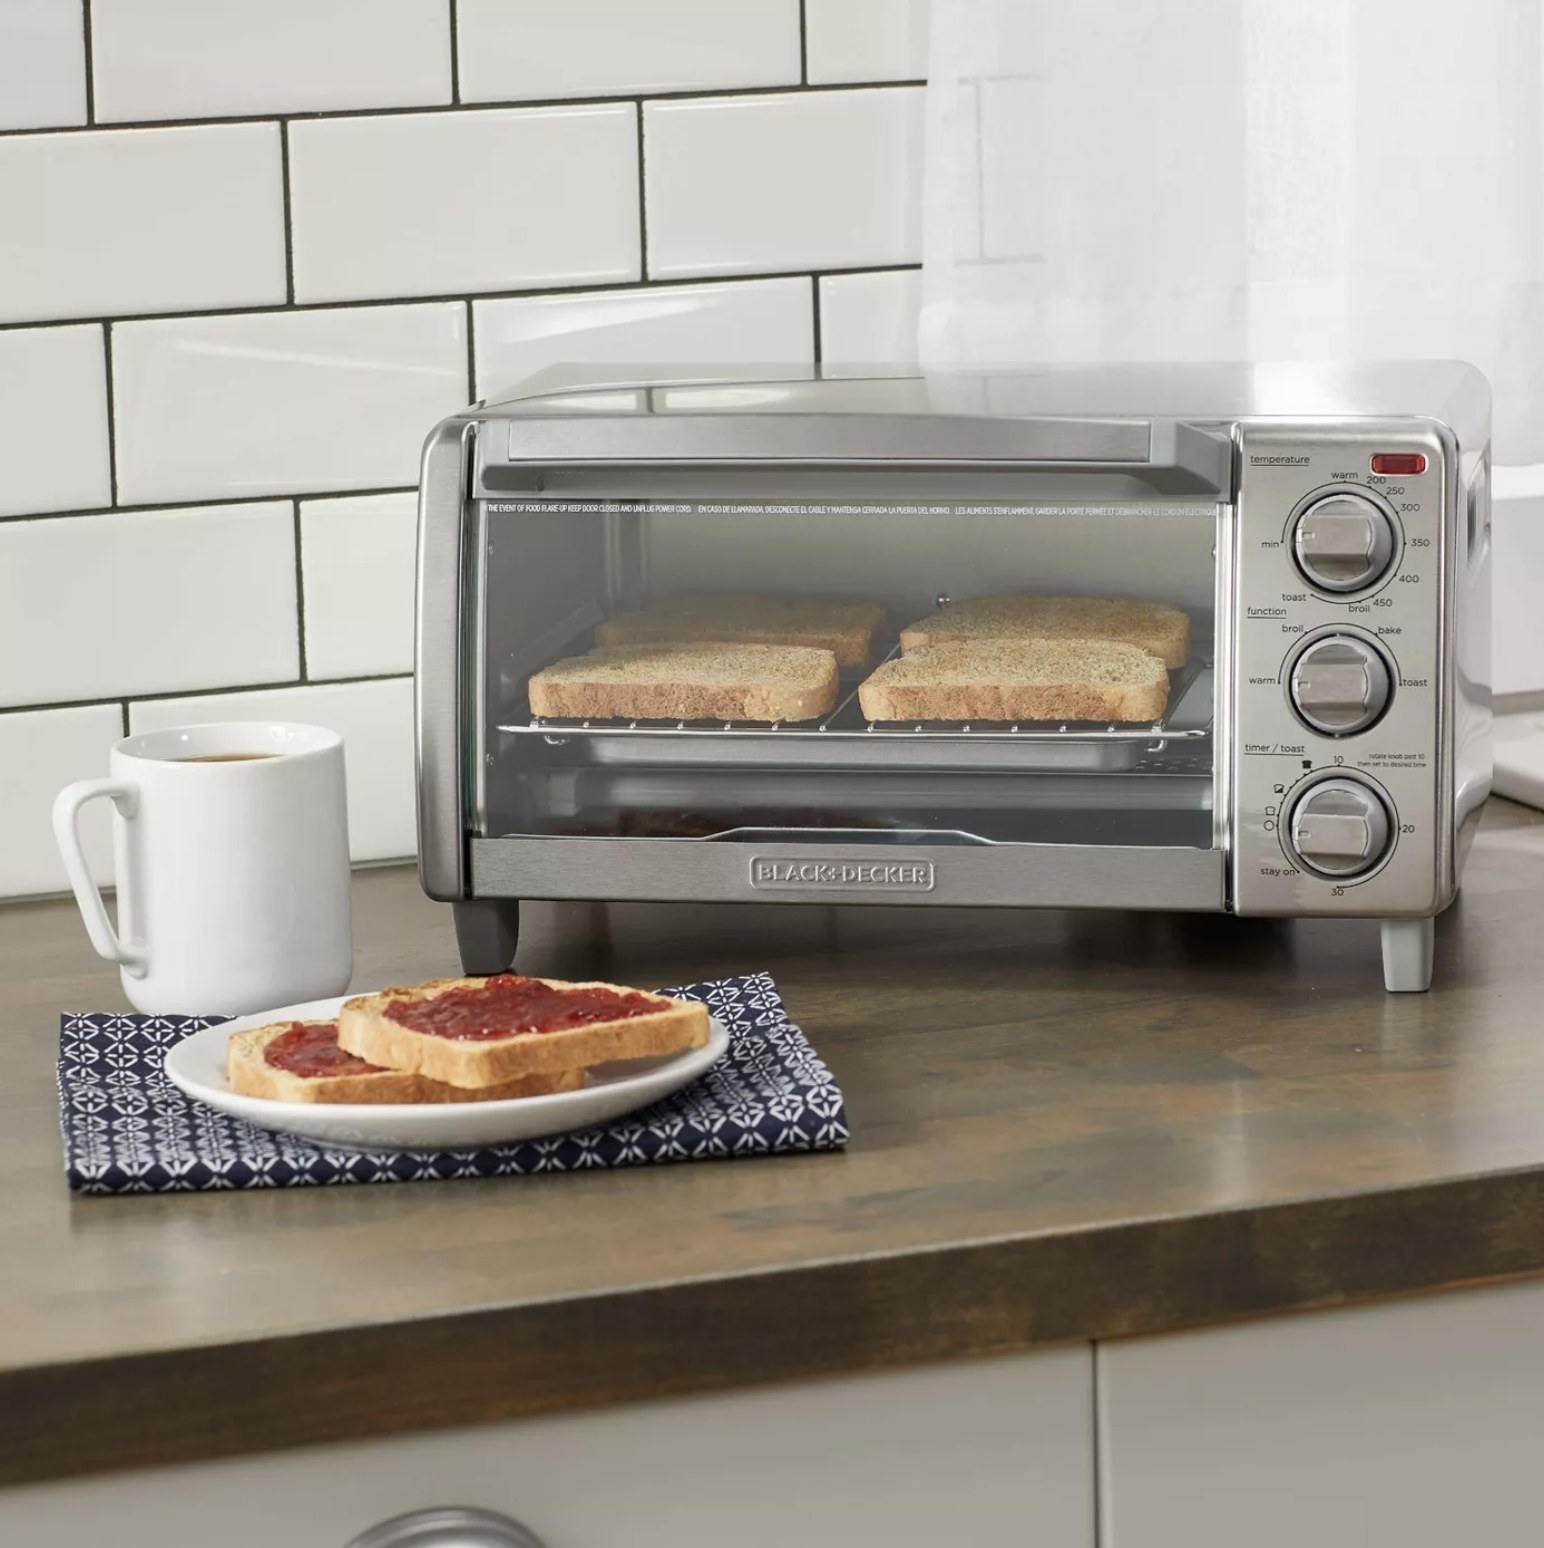 A stainless steel toaster oven in a kitchen with four slices of toast inside